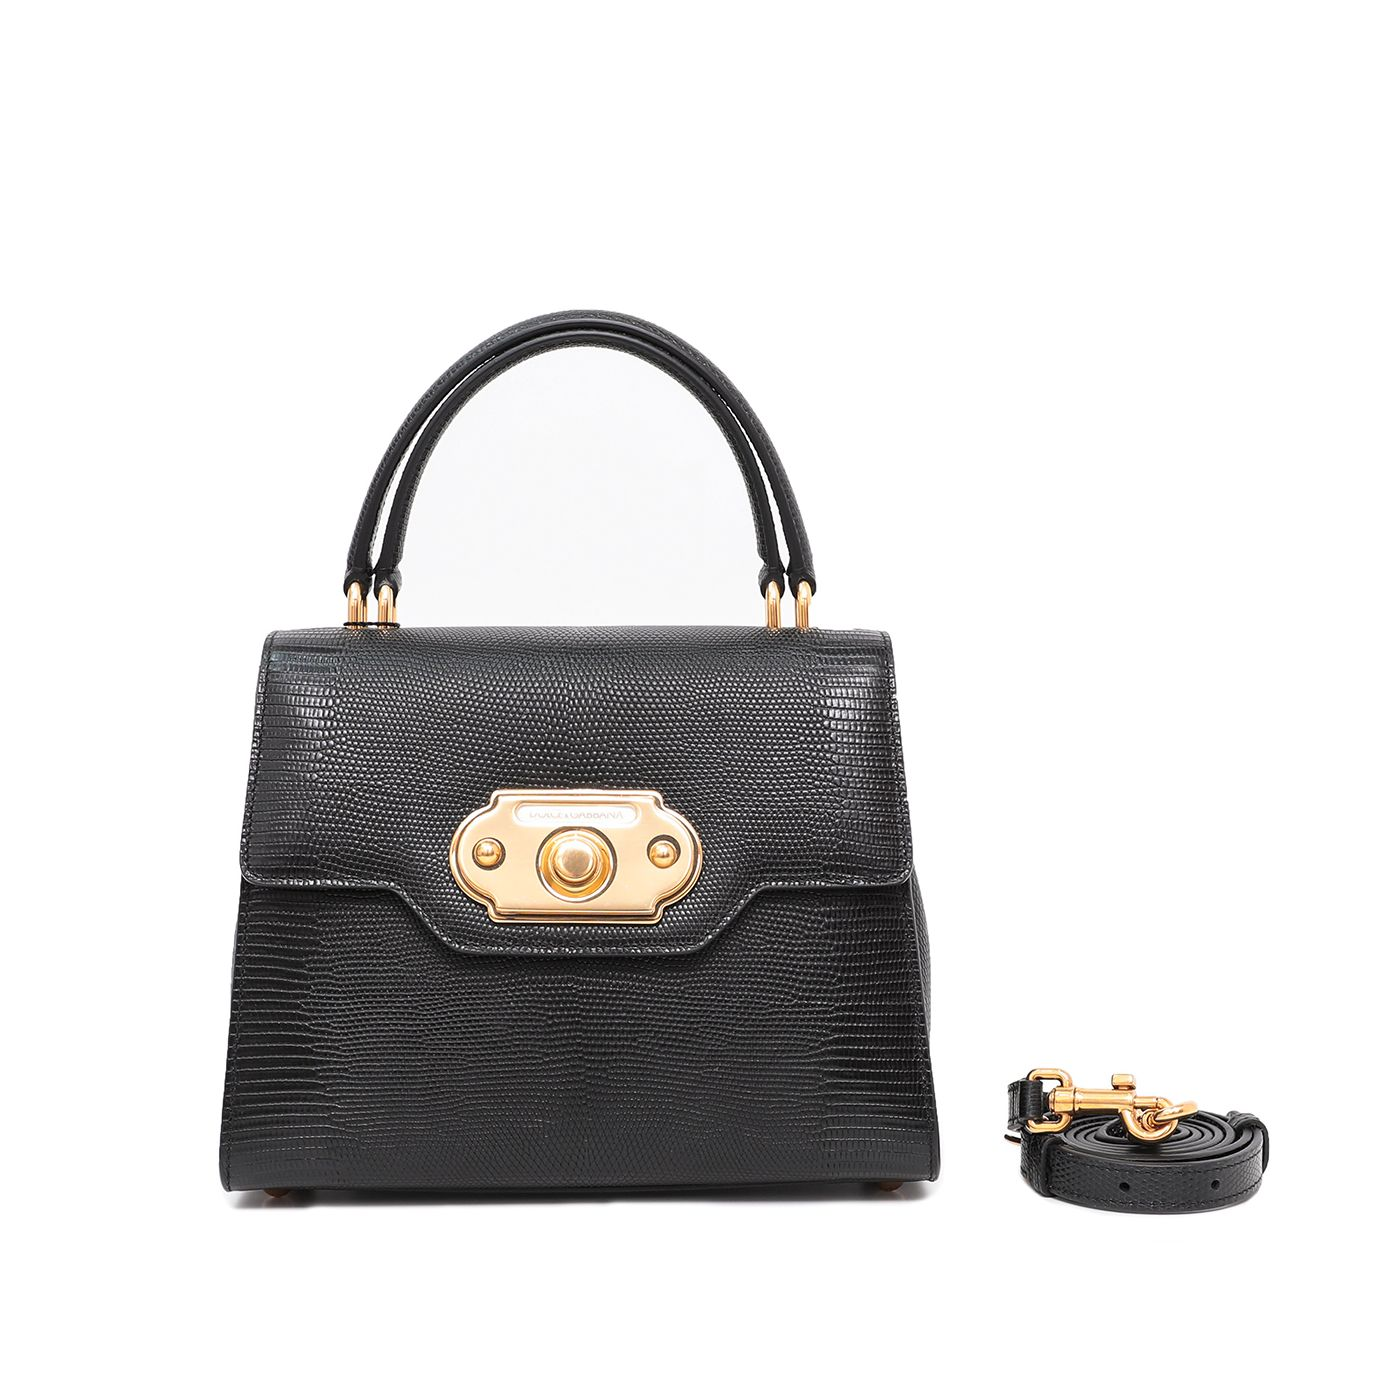 Dolce & Gabbana Black Welcome Top Handle Small